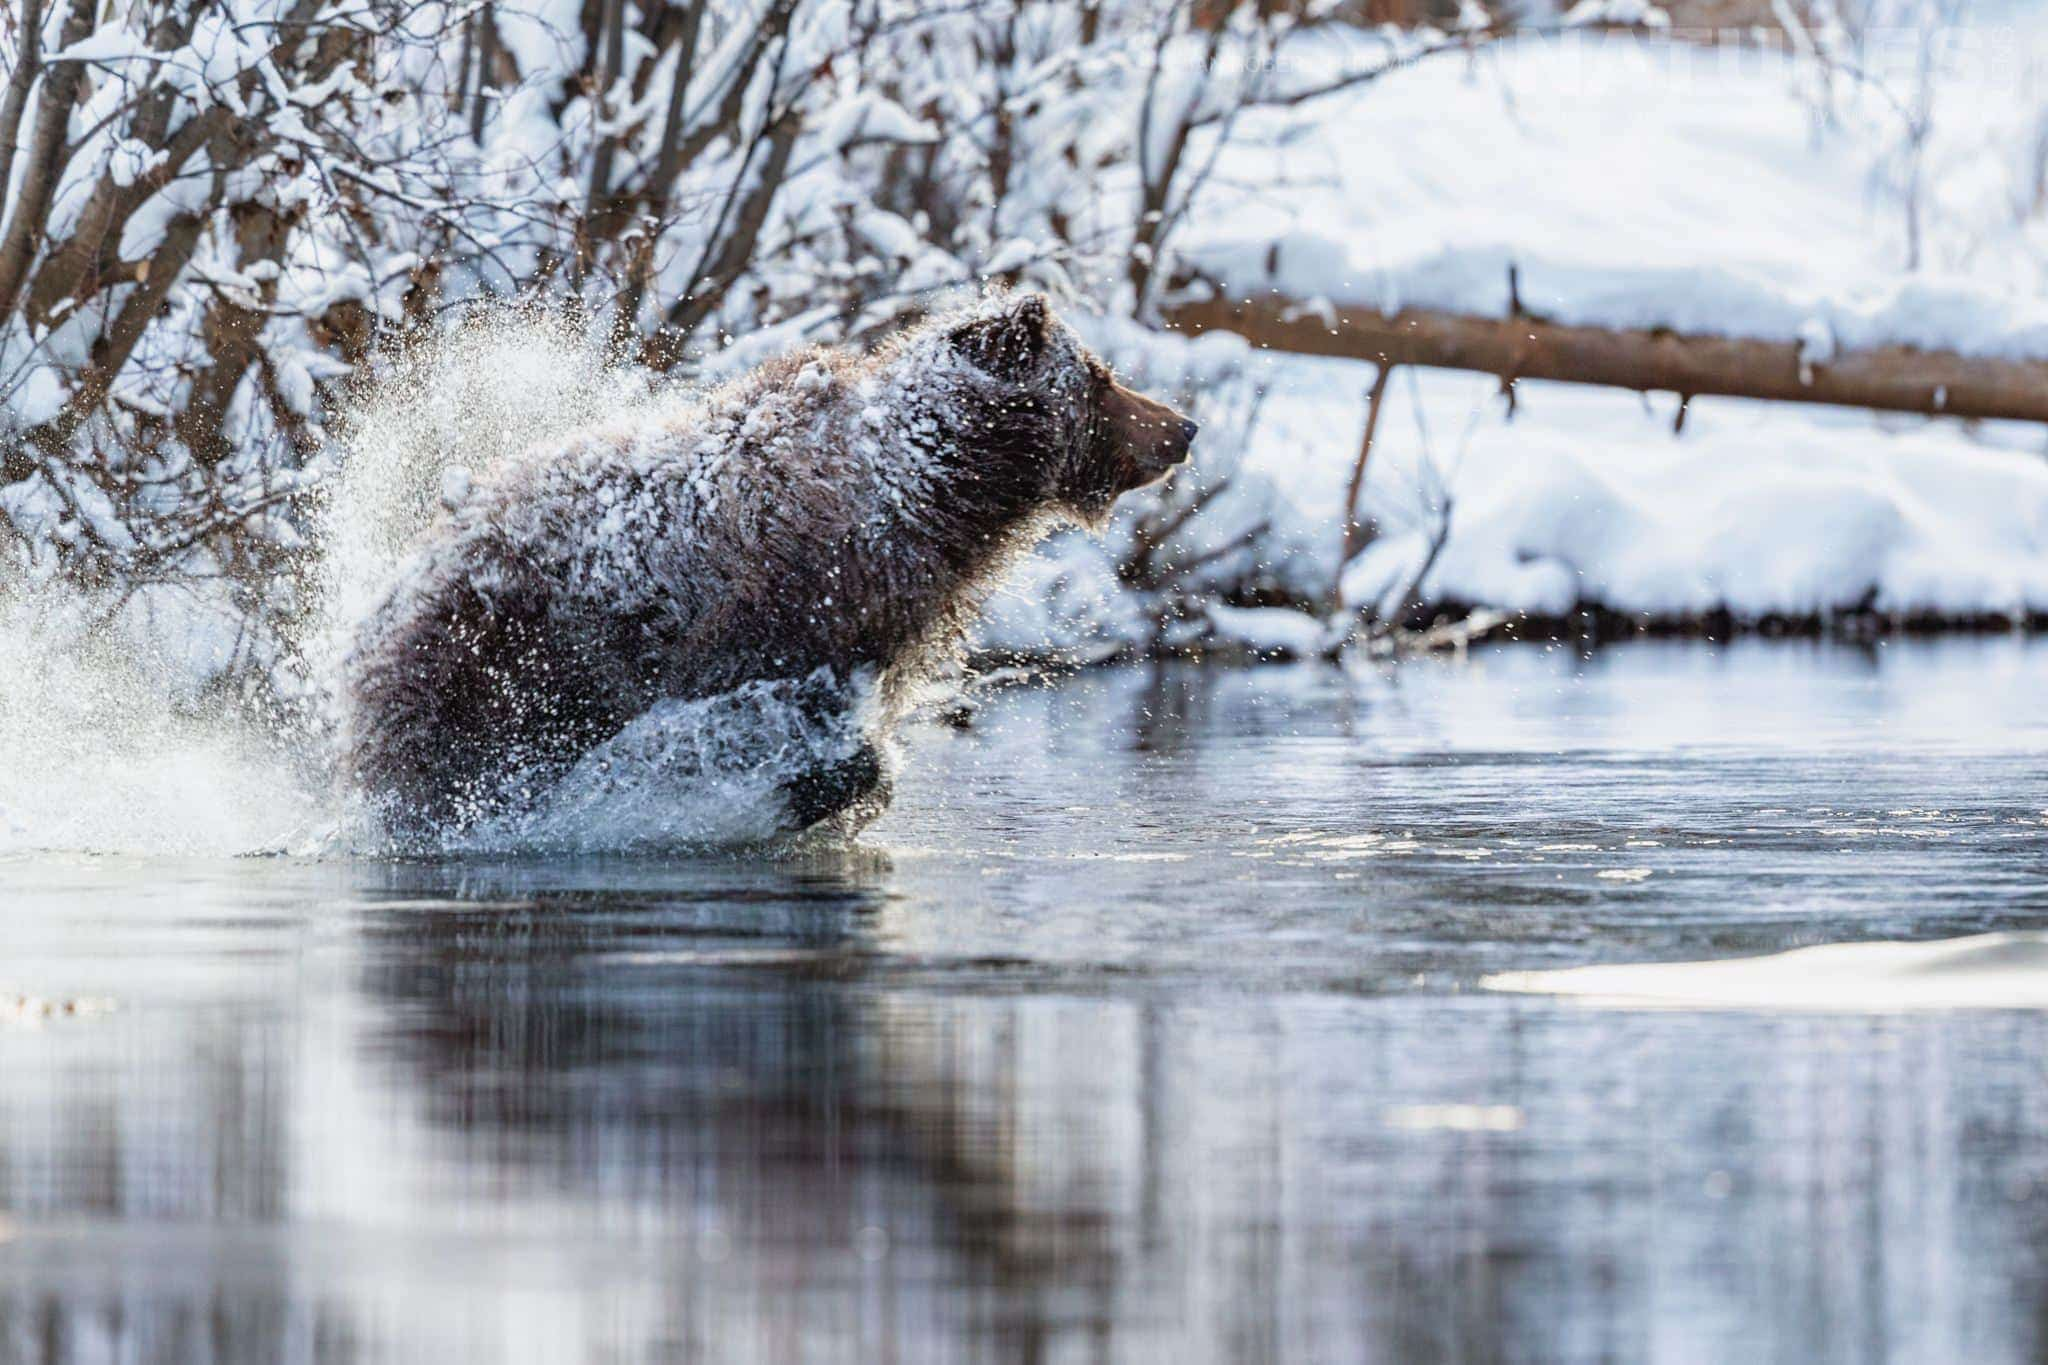 A Grizzly Bear Running Across The River   Captured During The Natureslens Ice Grizzlies Of The Yukon Photography Holiday